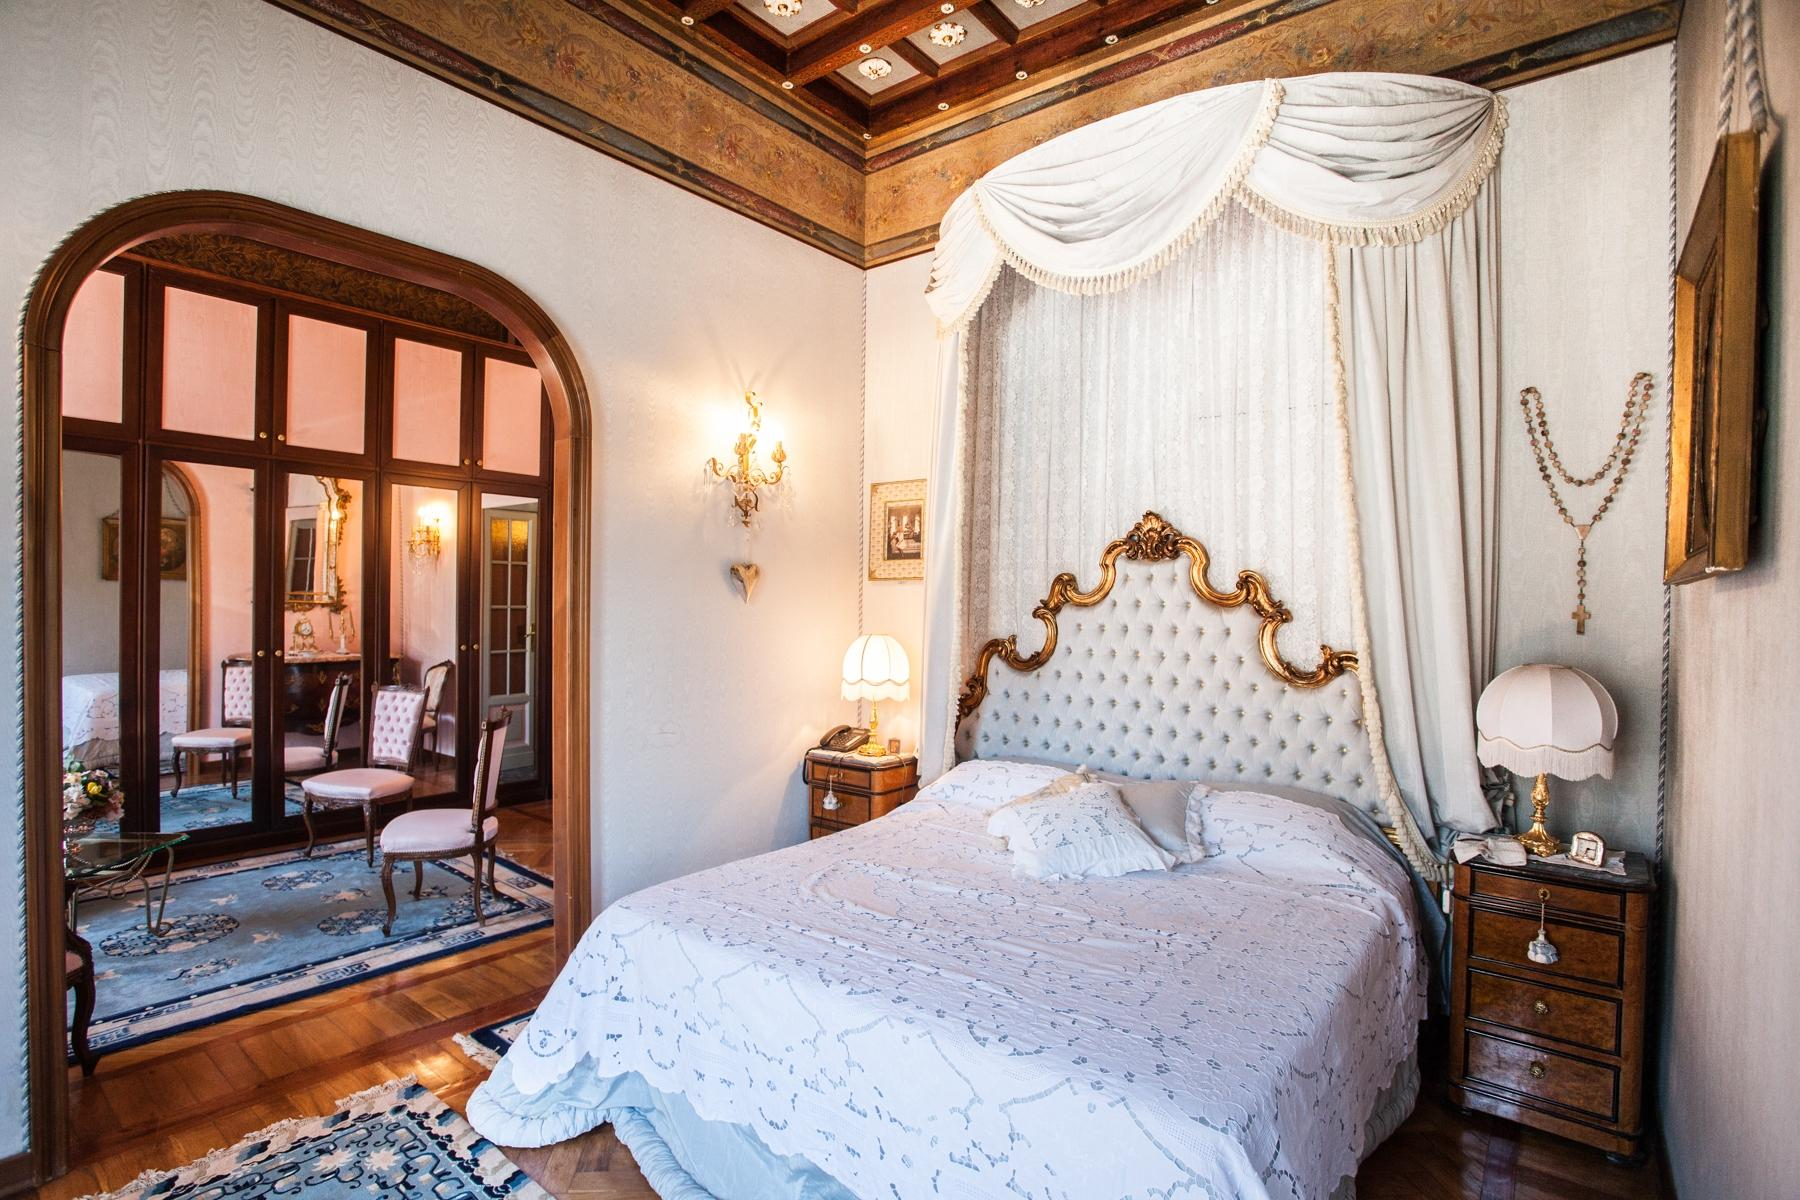 Charming historic villa with private park - 18